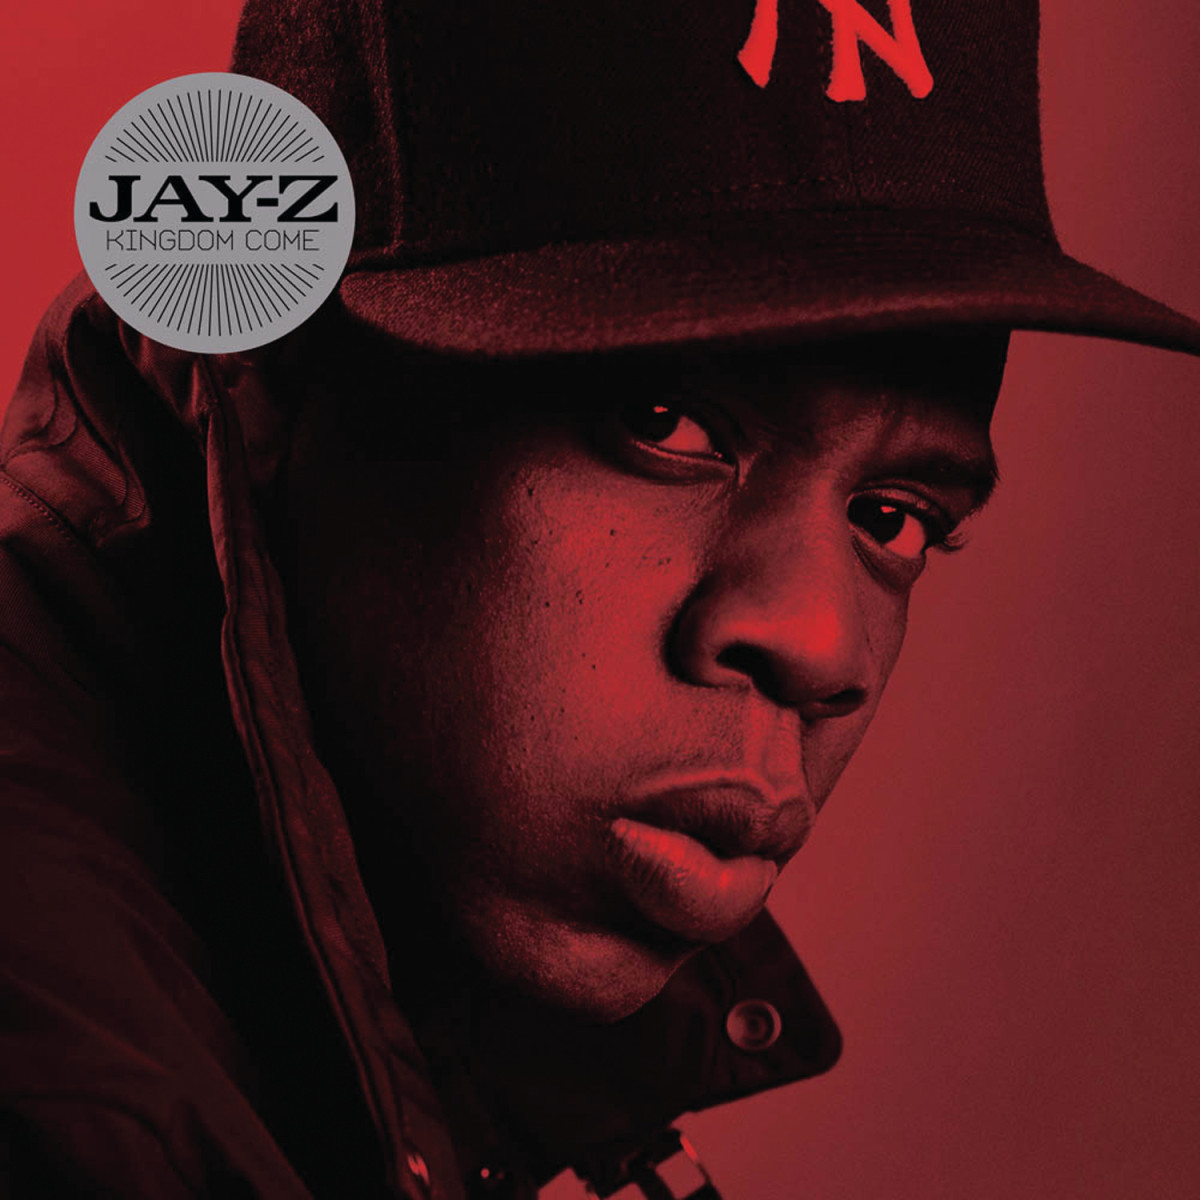 The cover to JAY-Z's Kingdom Come album